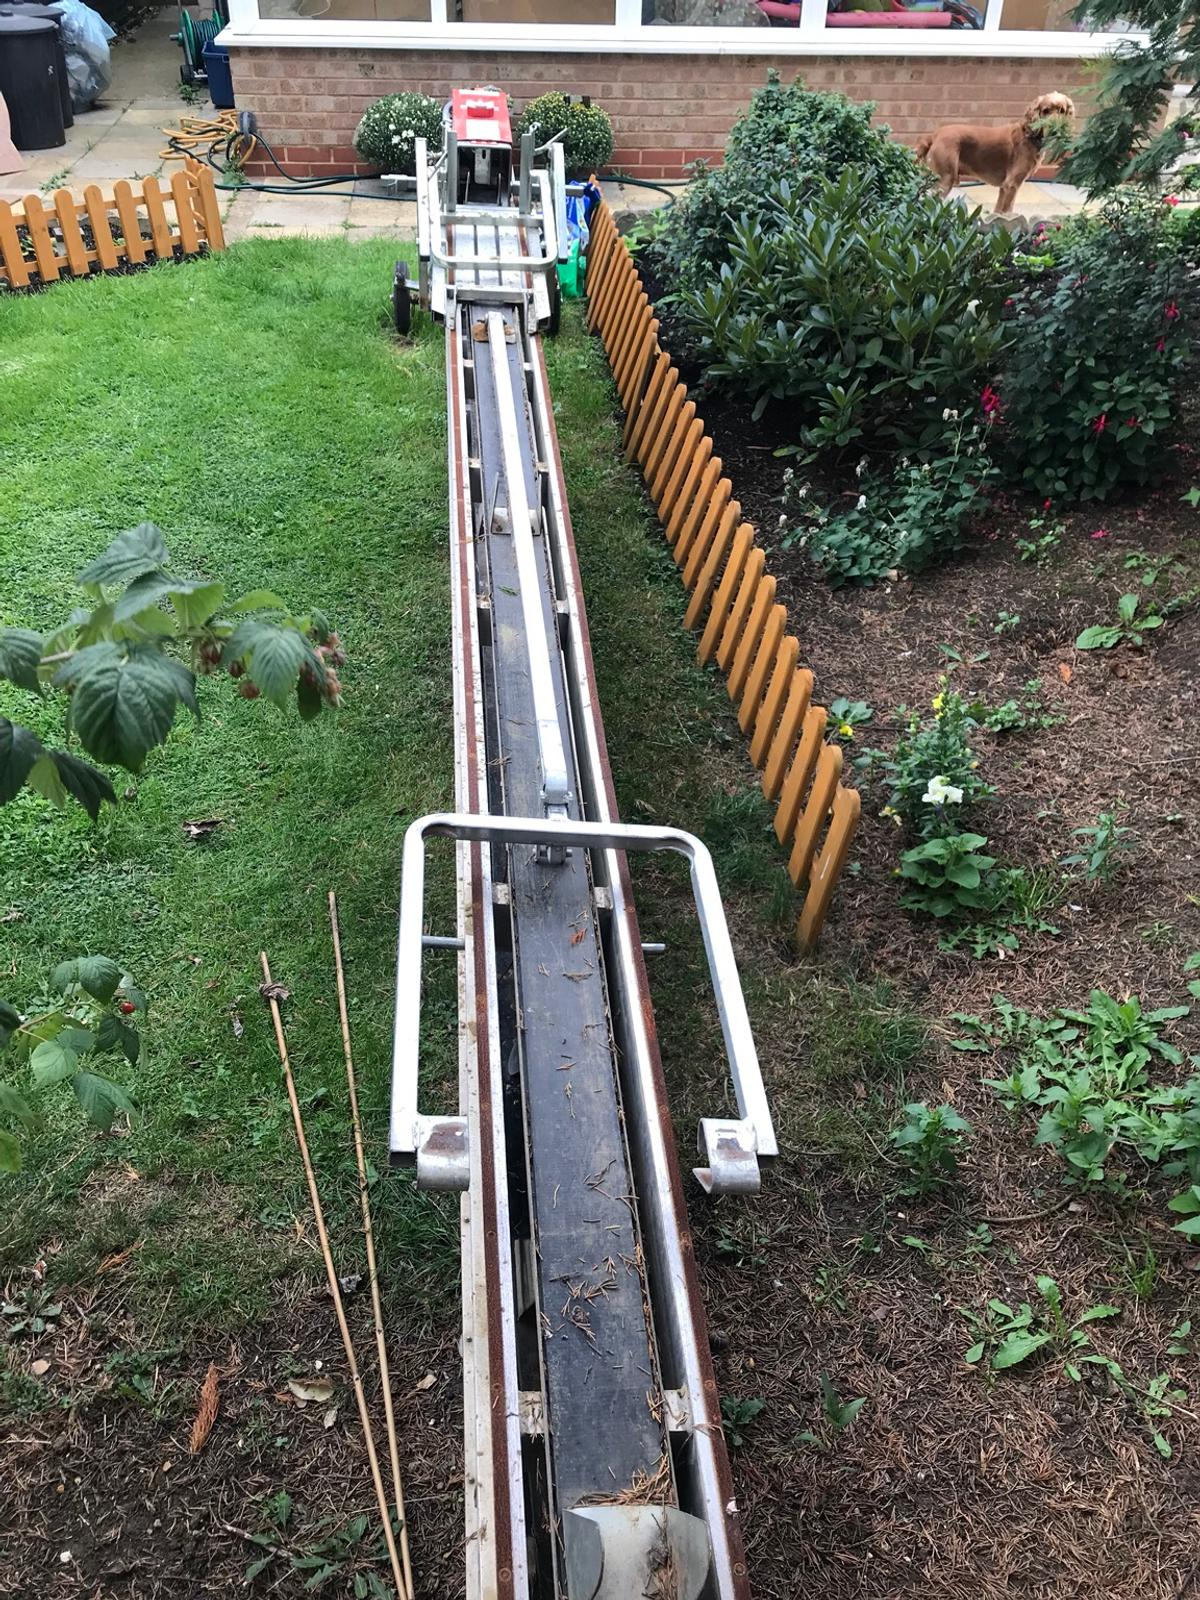 Bumpa hoist in Wolverton for £800 00 for sale - Shpock